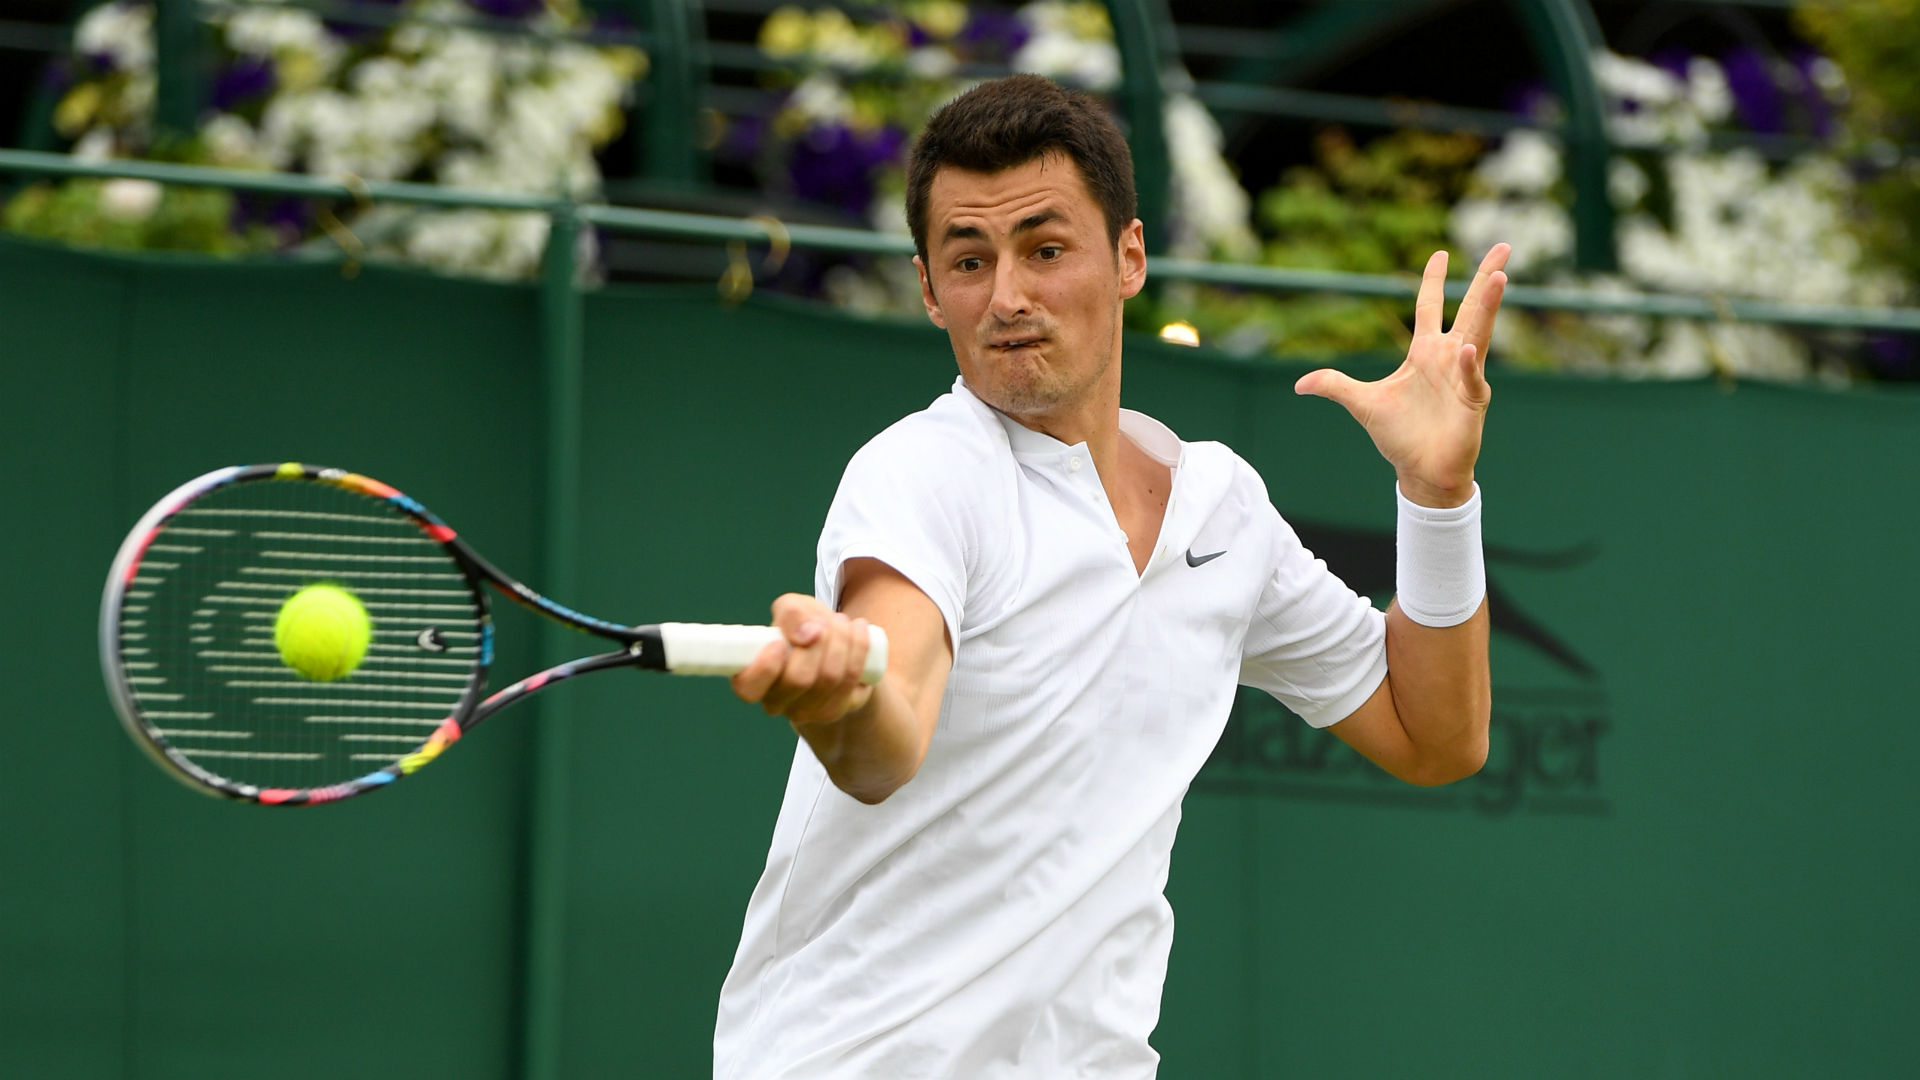 'I was bored,' Tomic says after first-round defeat